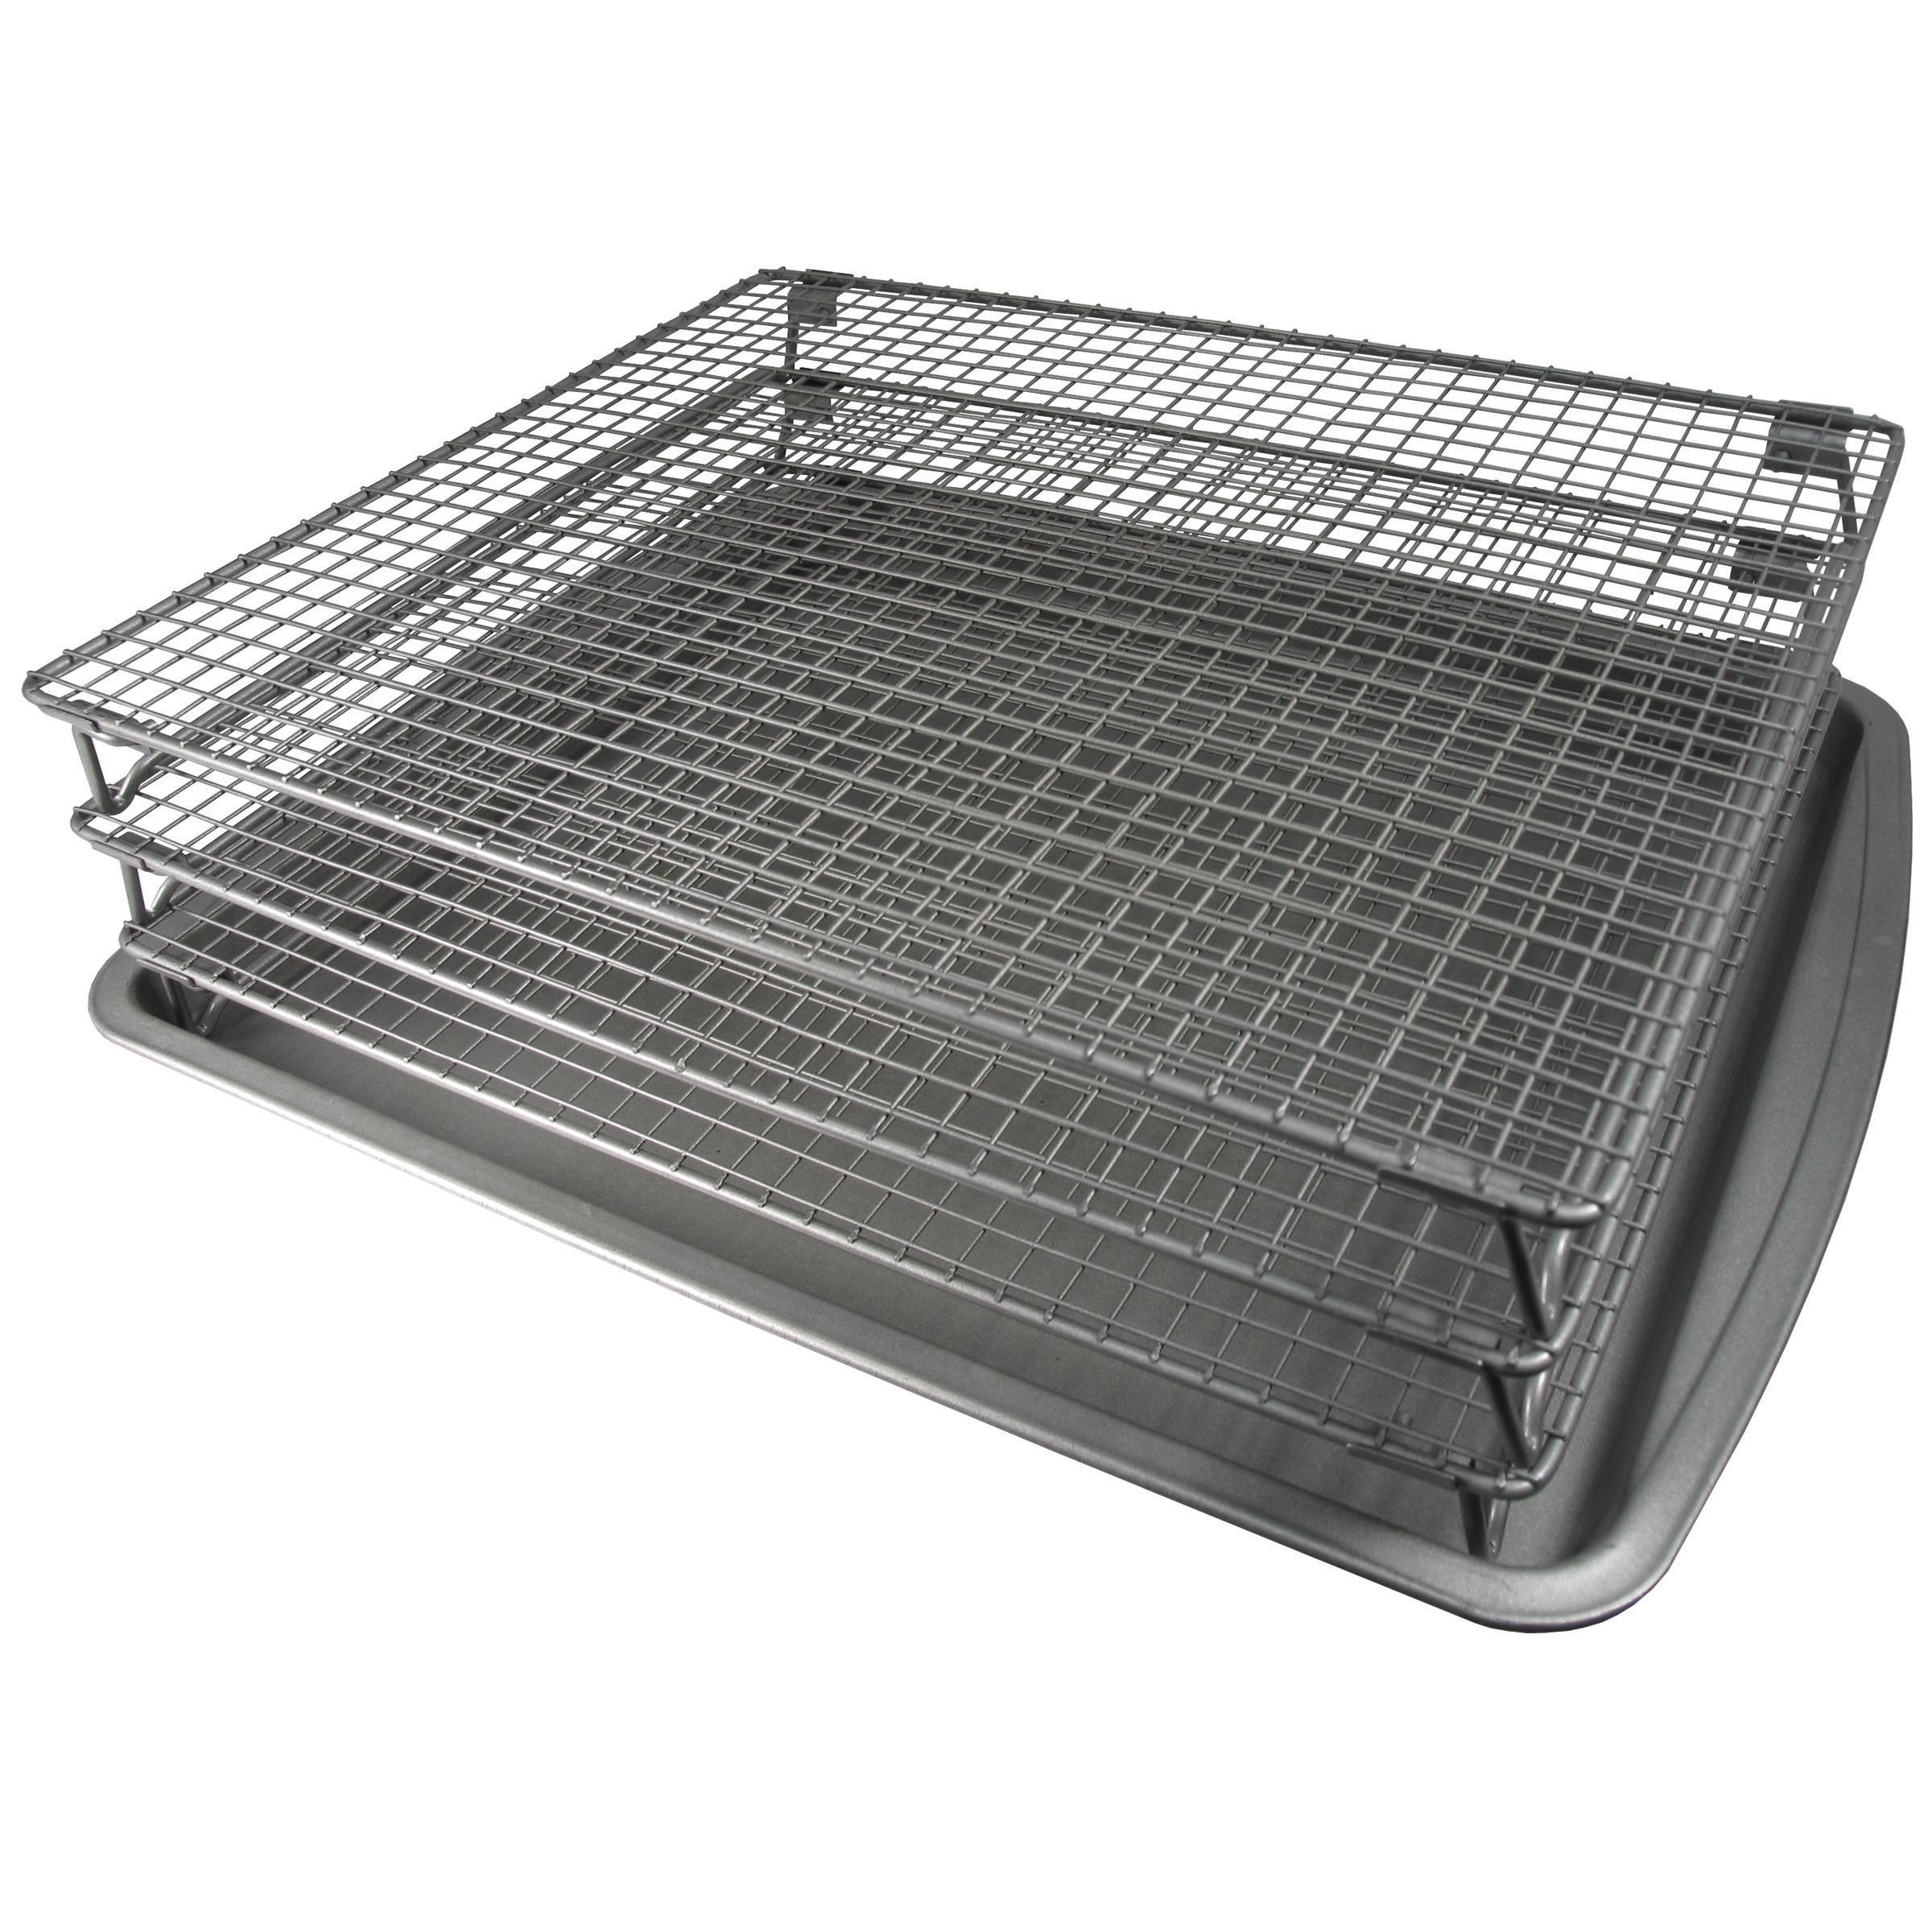 Amazon.com: Weston Nonstick 3-Tier Drying Rack and Baking ...